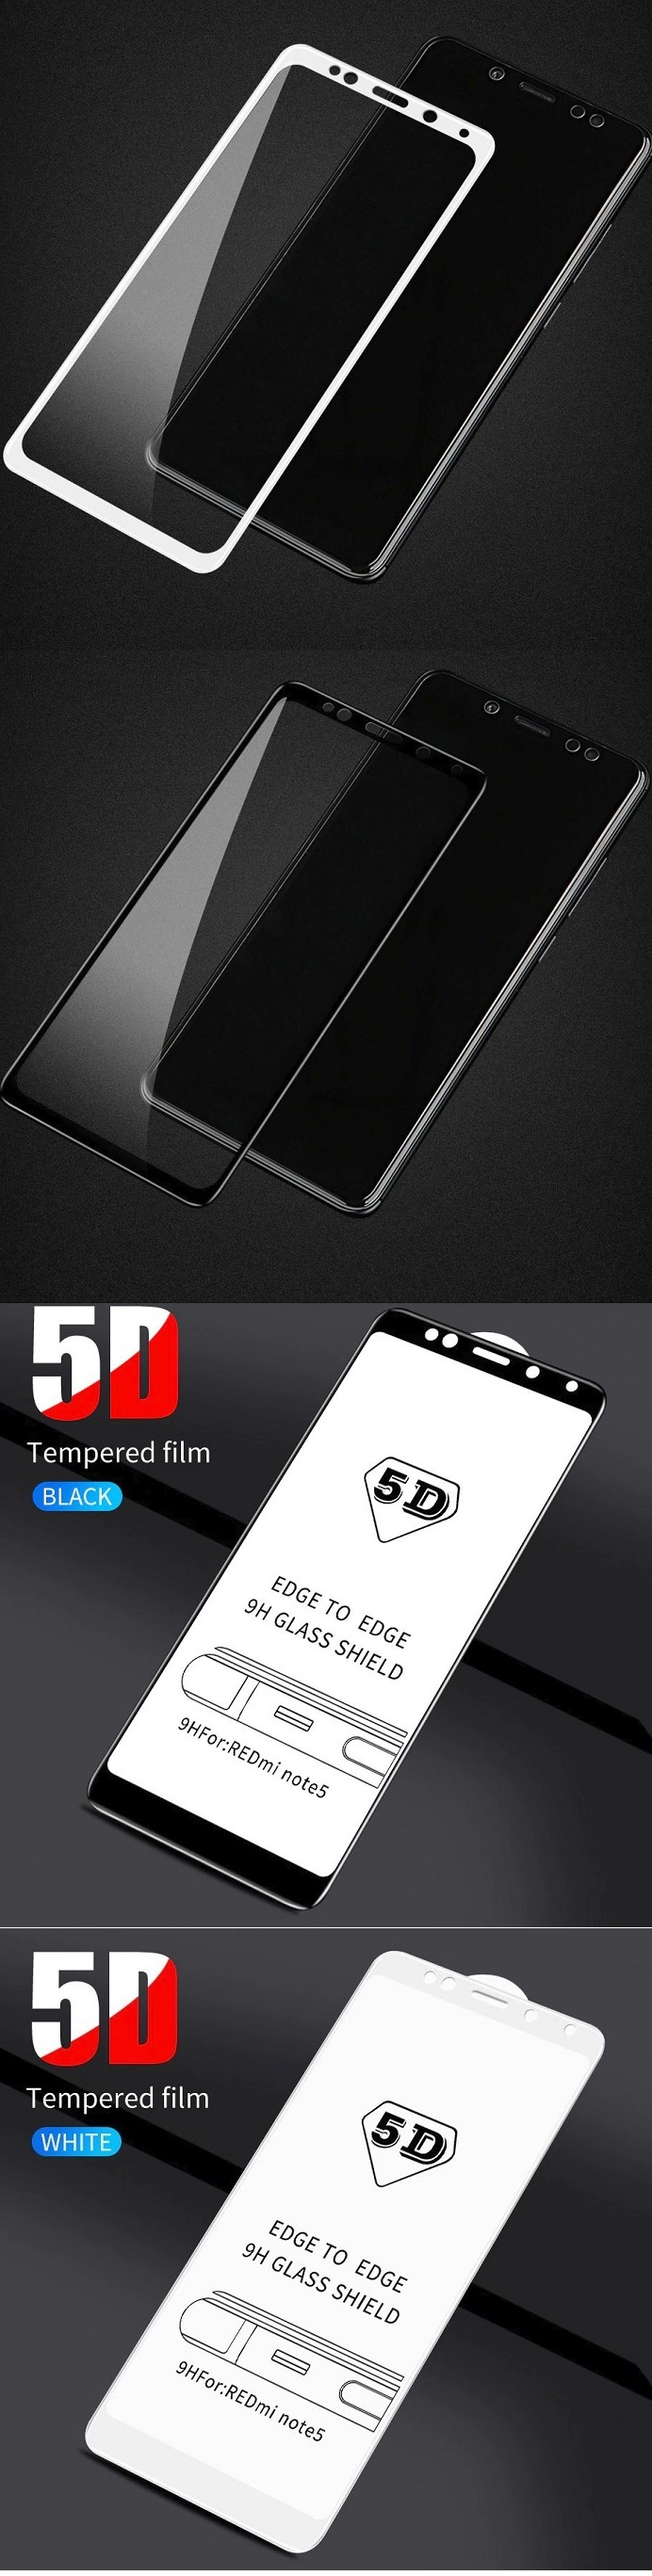 buy tempered glass